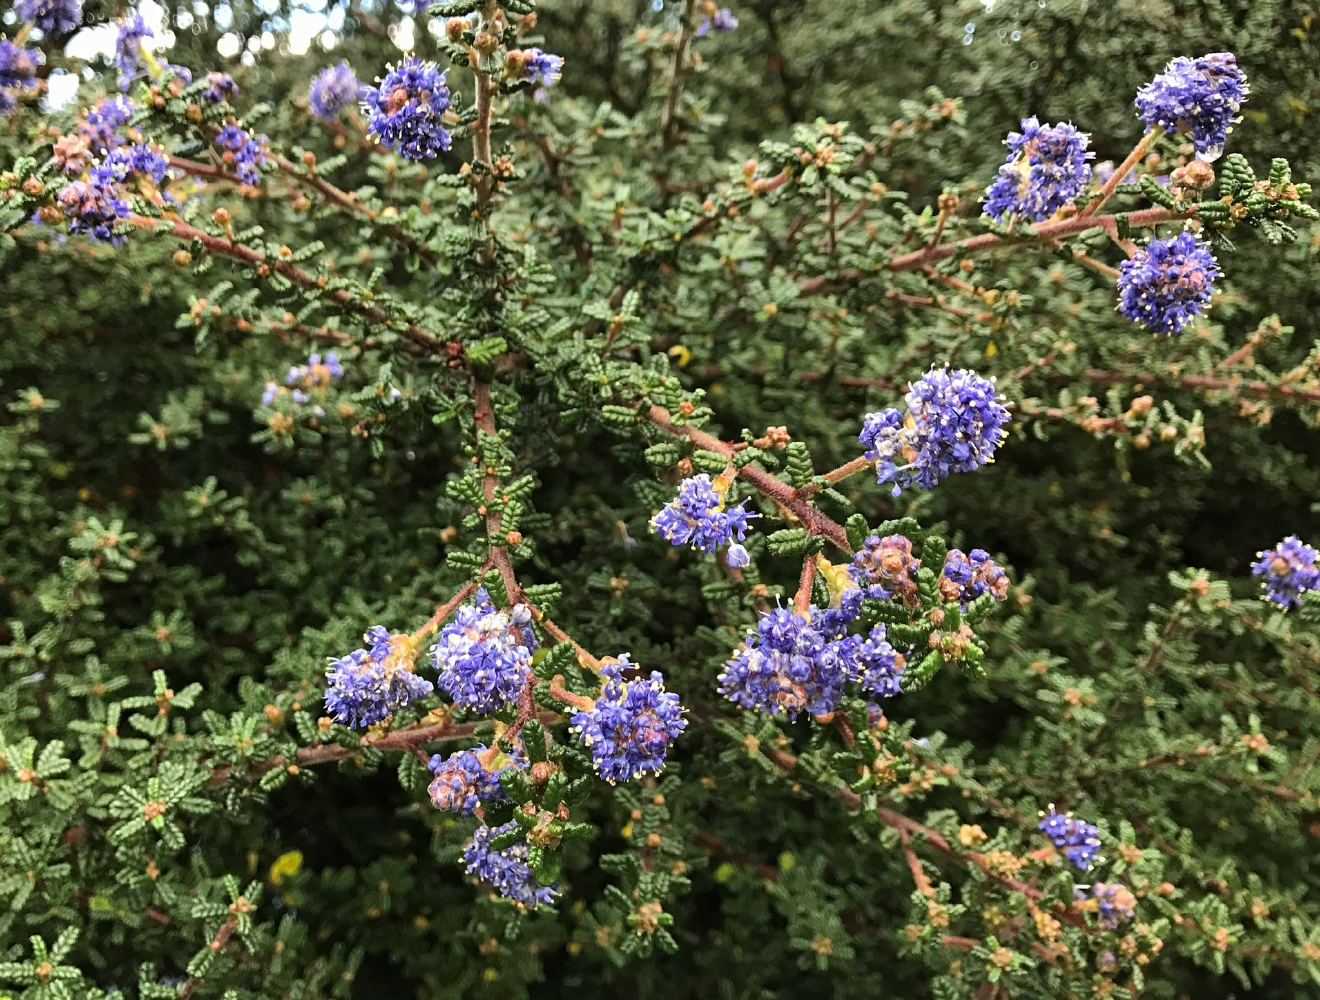 Fall flowering is unheard of for spring-blooming Ceanothus. Photo by Neil Bell.